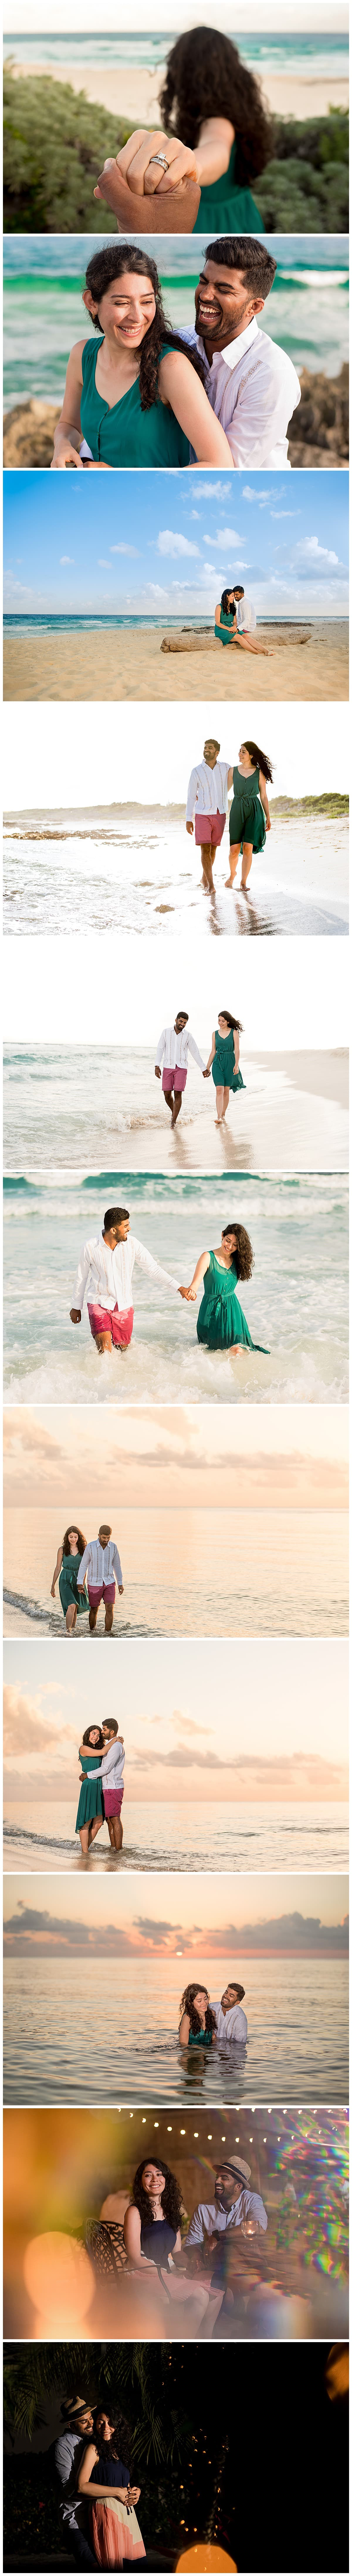 Cancun Wedding Photographer UK